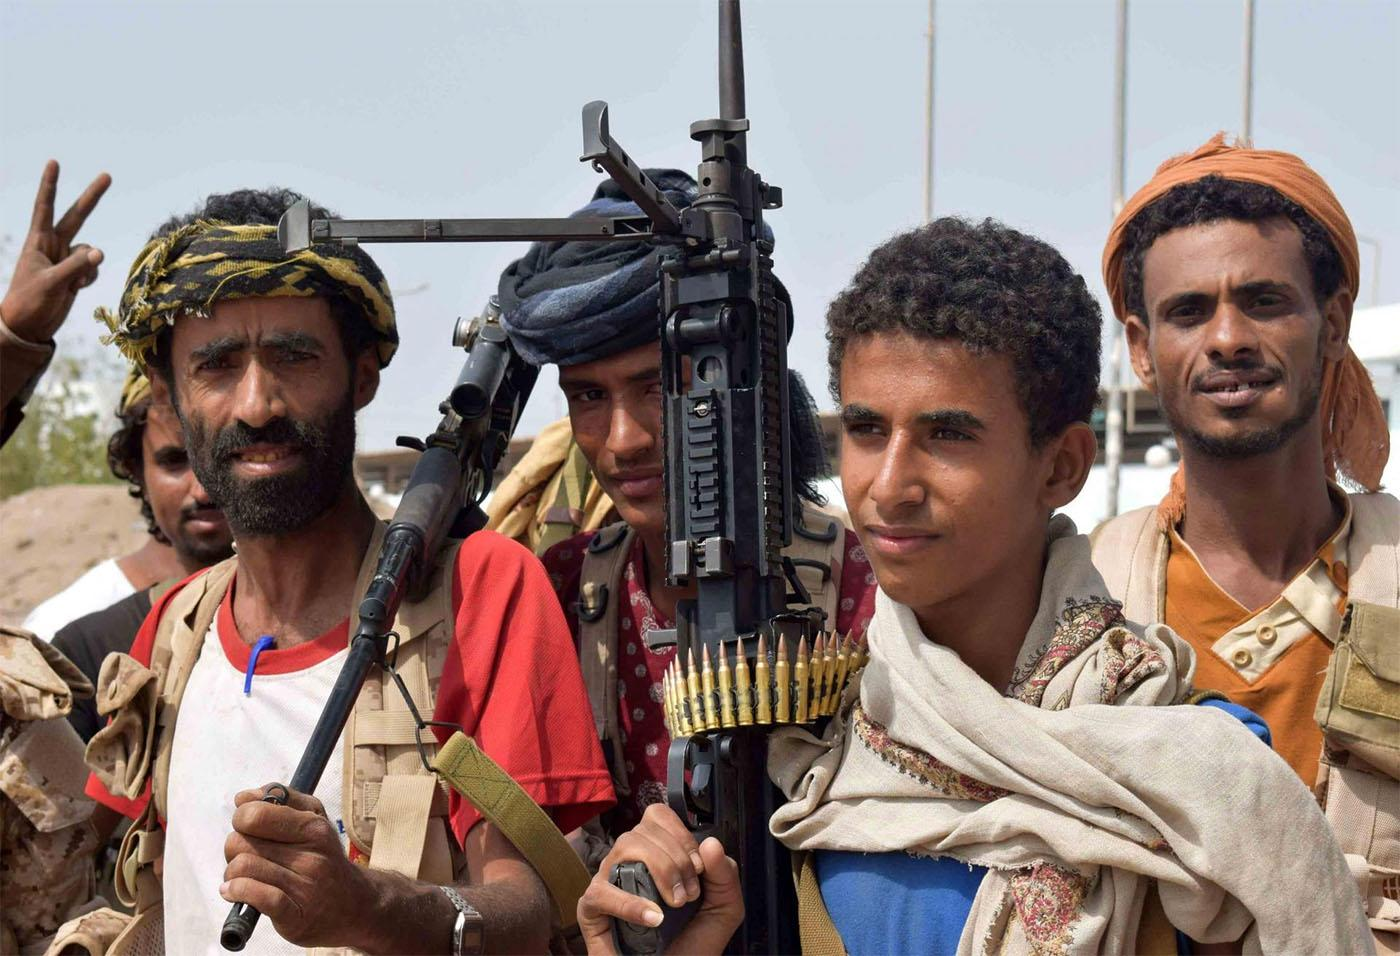 Huthi rebels are losing ground in the battle against Saudi-led forces in Yemen's port city of Hodeidah